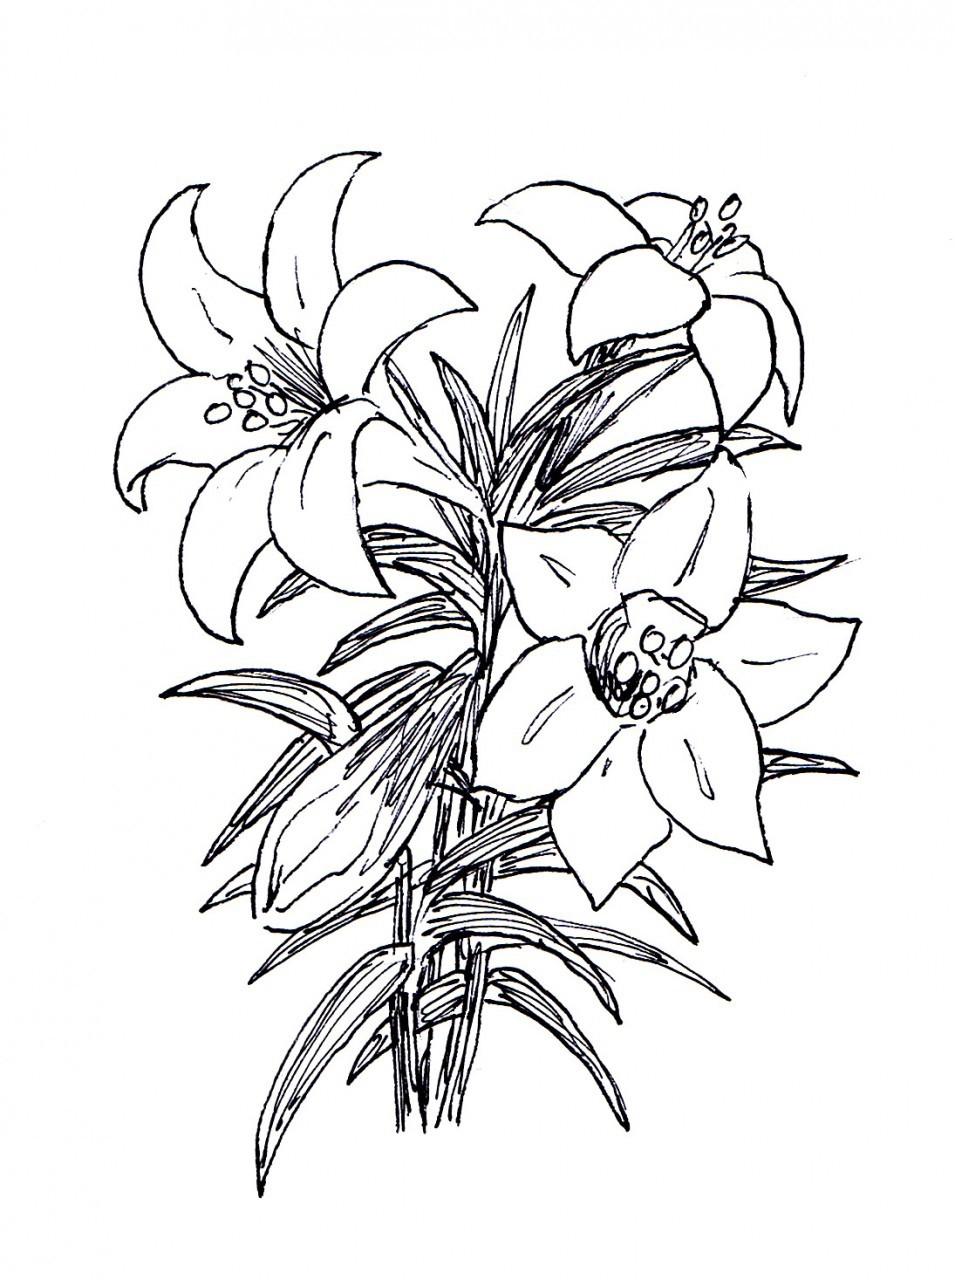 Free Easter Lily Cliparts, Download Free Clip Art, Free Clip Art on.